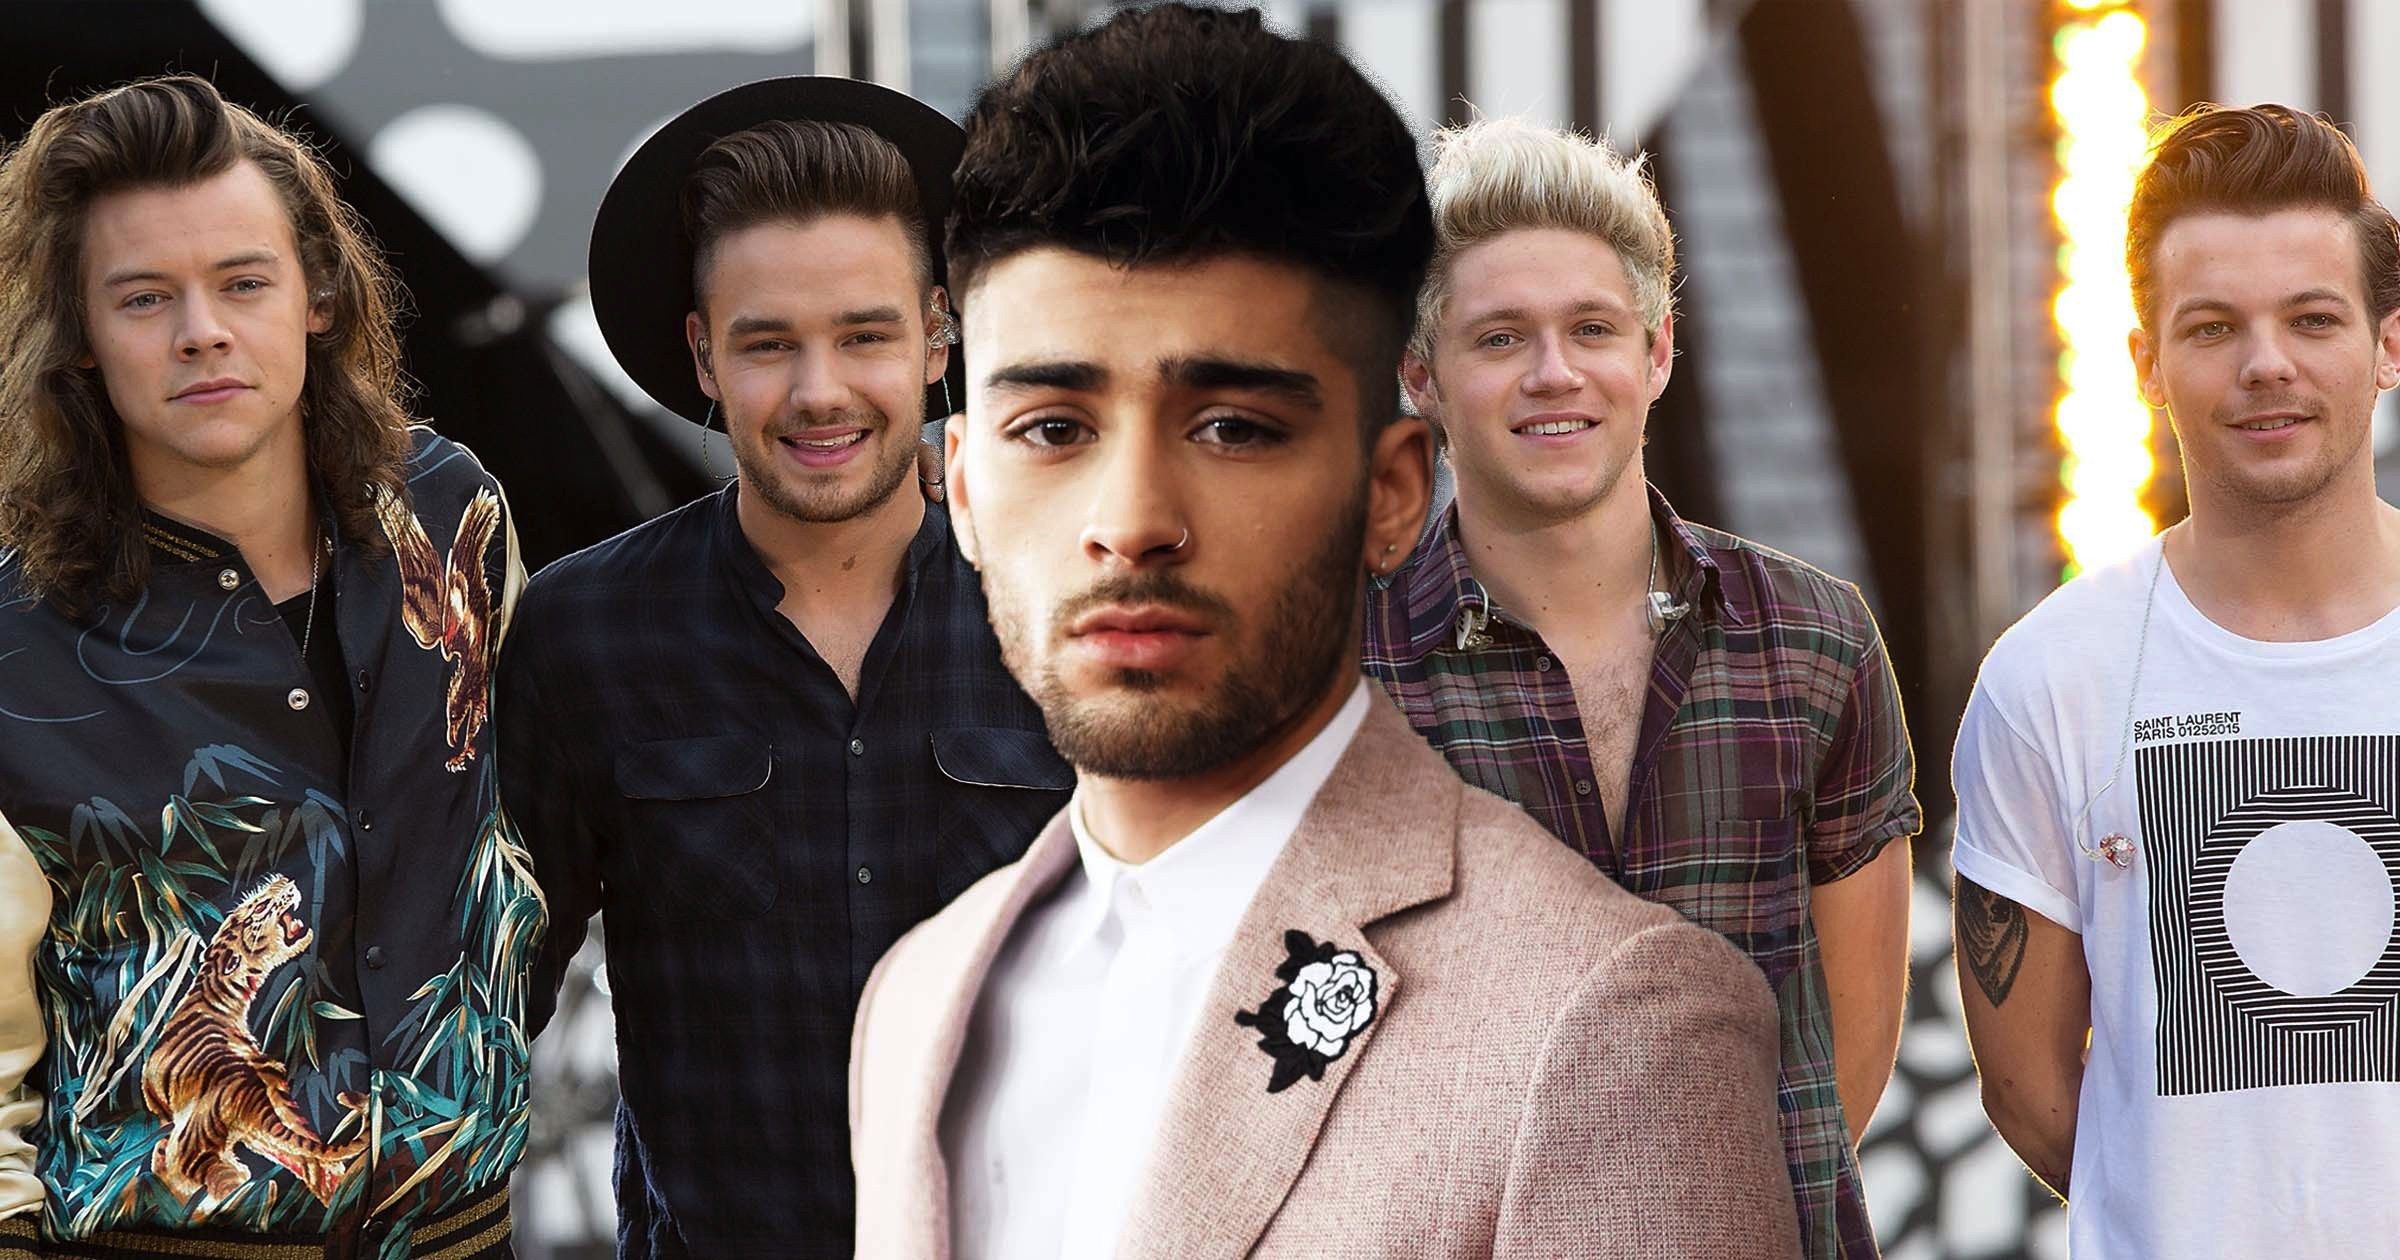 Liam Payne teases One Direction reunion for 10th anniversary but Zayn Malik won't be part of it